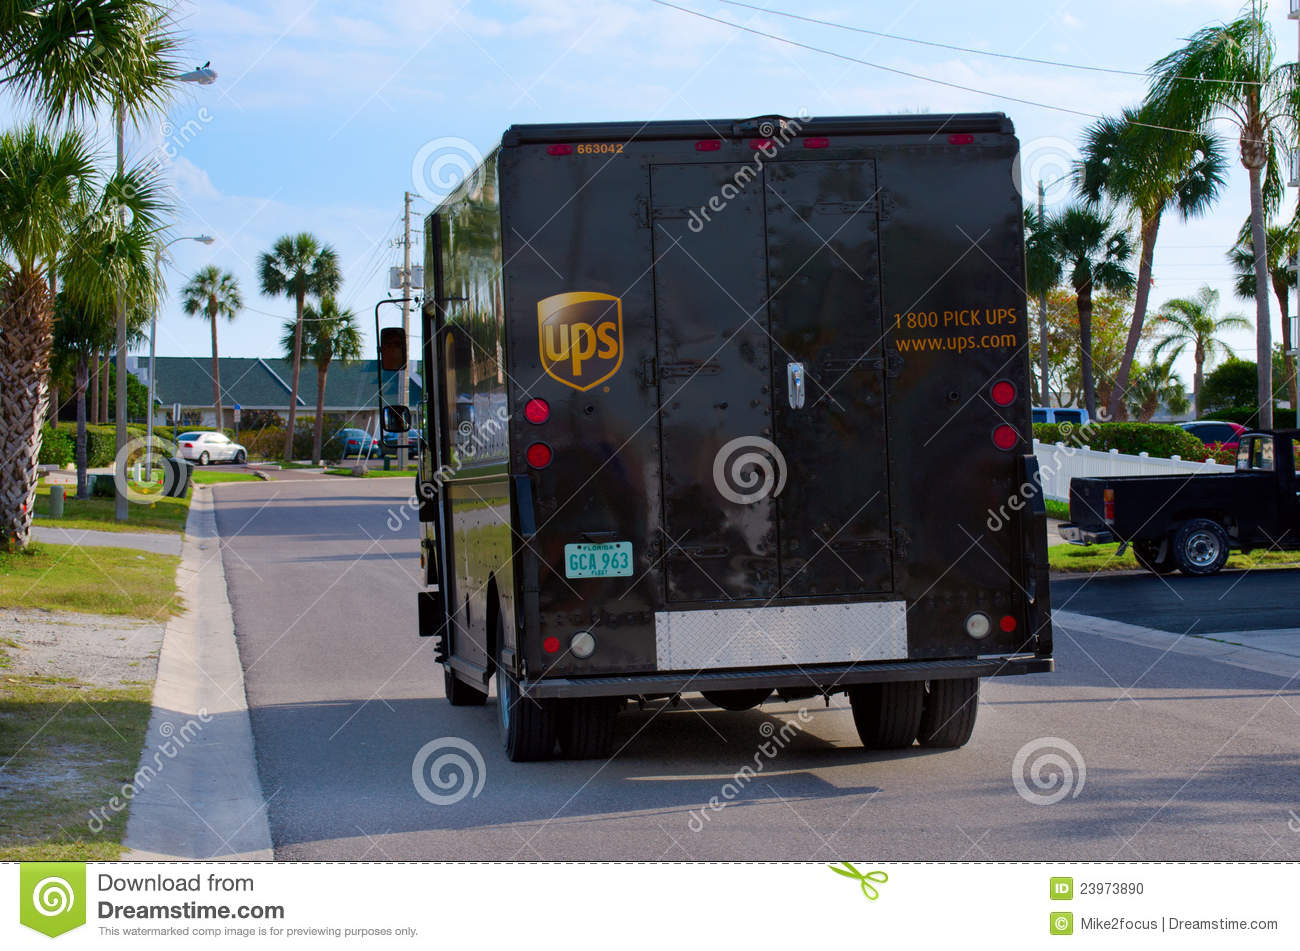 united parcel service and ups United parcel service (ups) (iata: 5x / icao: ups) is an airline based in louisville, united states founded in 1982 currently operating a fleet of 243 aircraft.